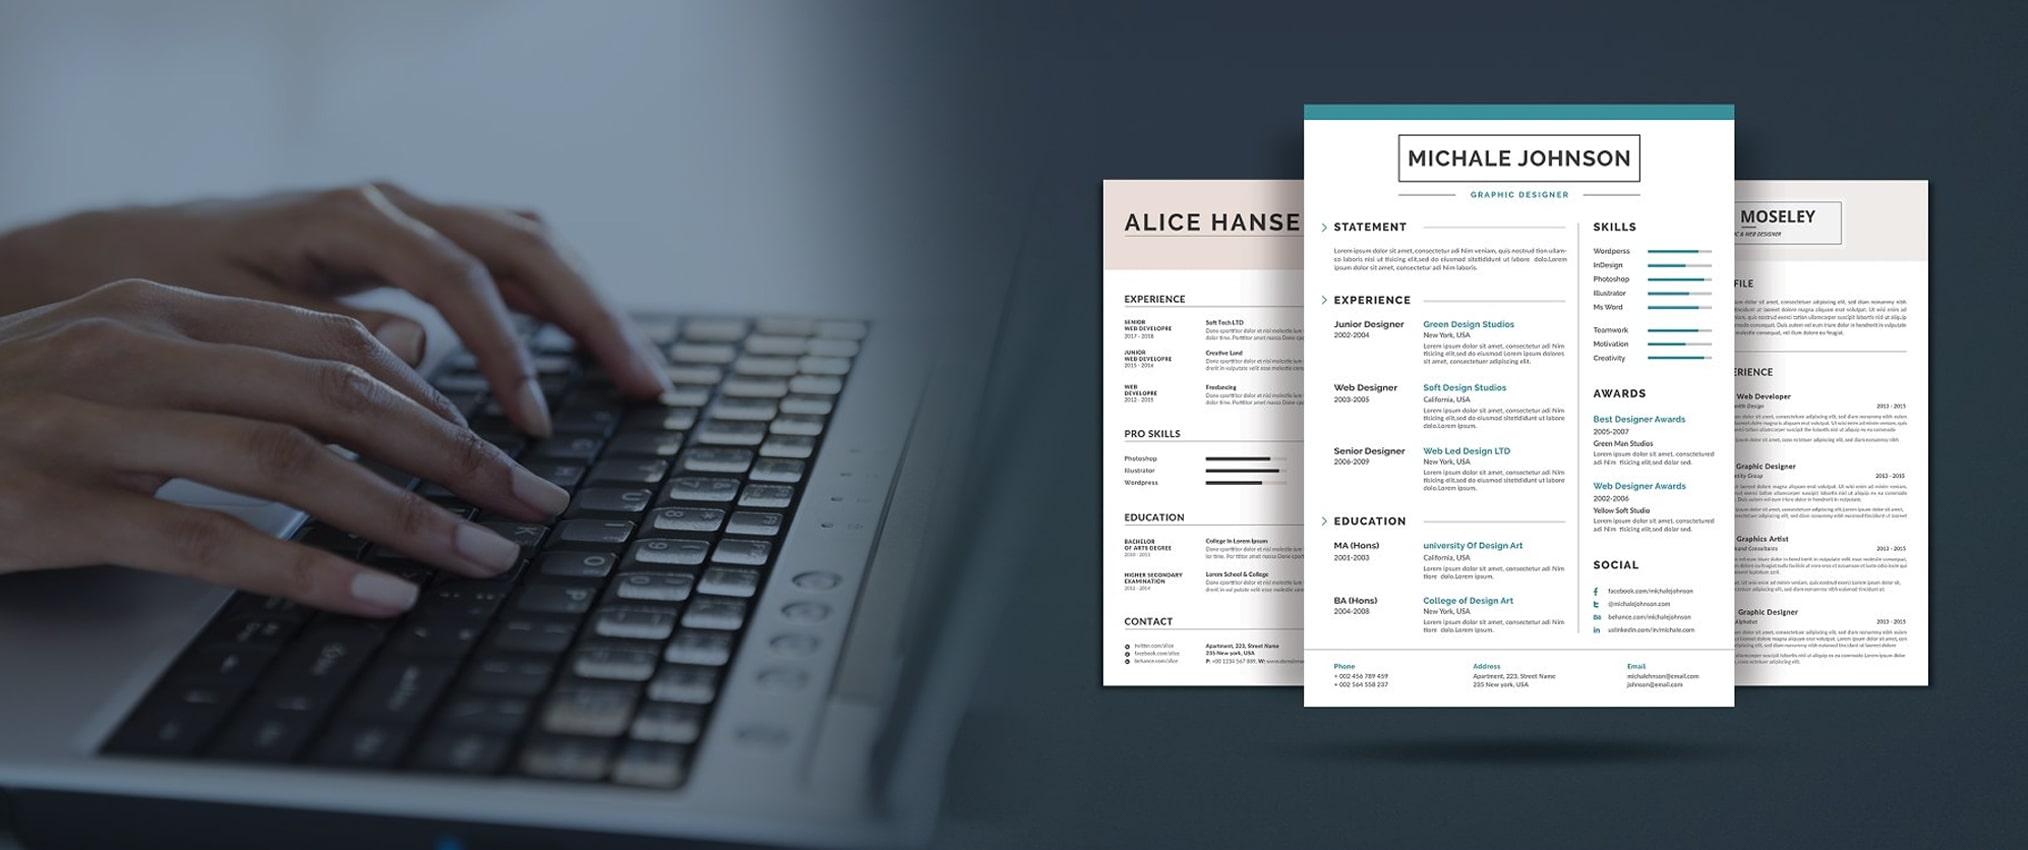 outsource resume processing cv formatting services